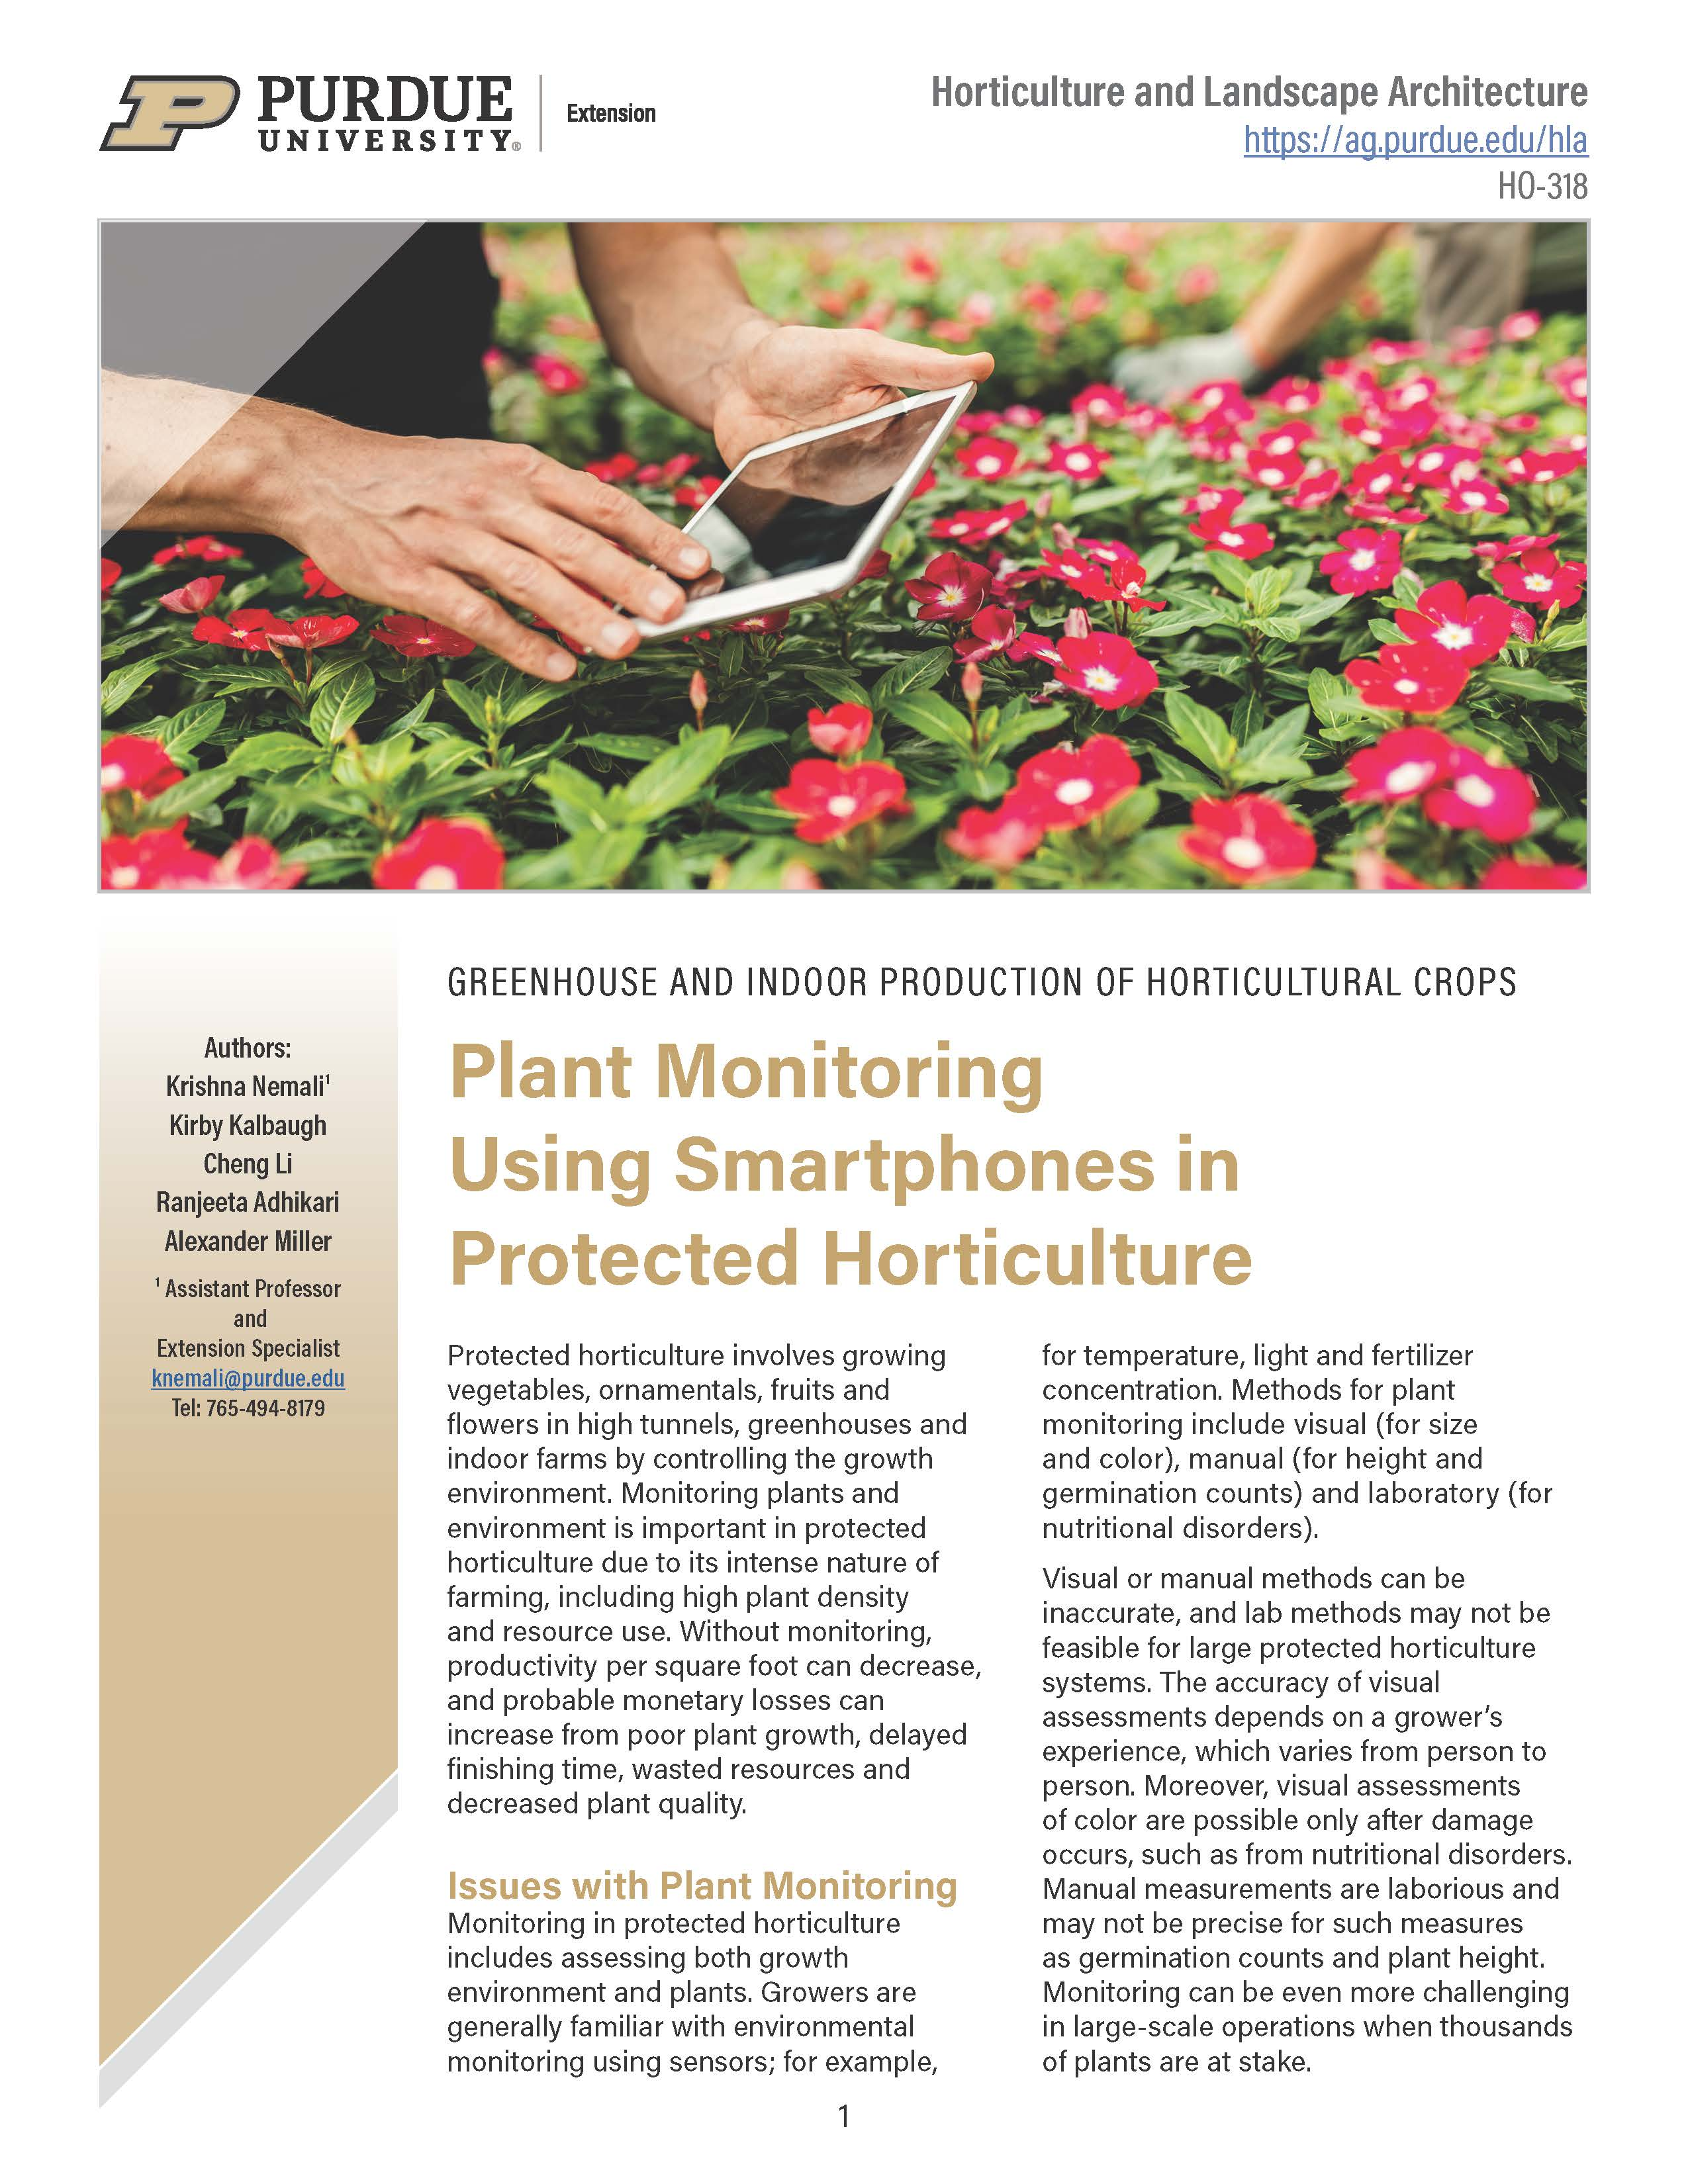 Greenhouse and Indoor Production of Horticultural Crops: Plant Monitoring Using Smartphones in Protected Agriculture